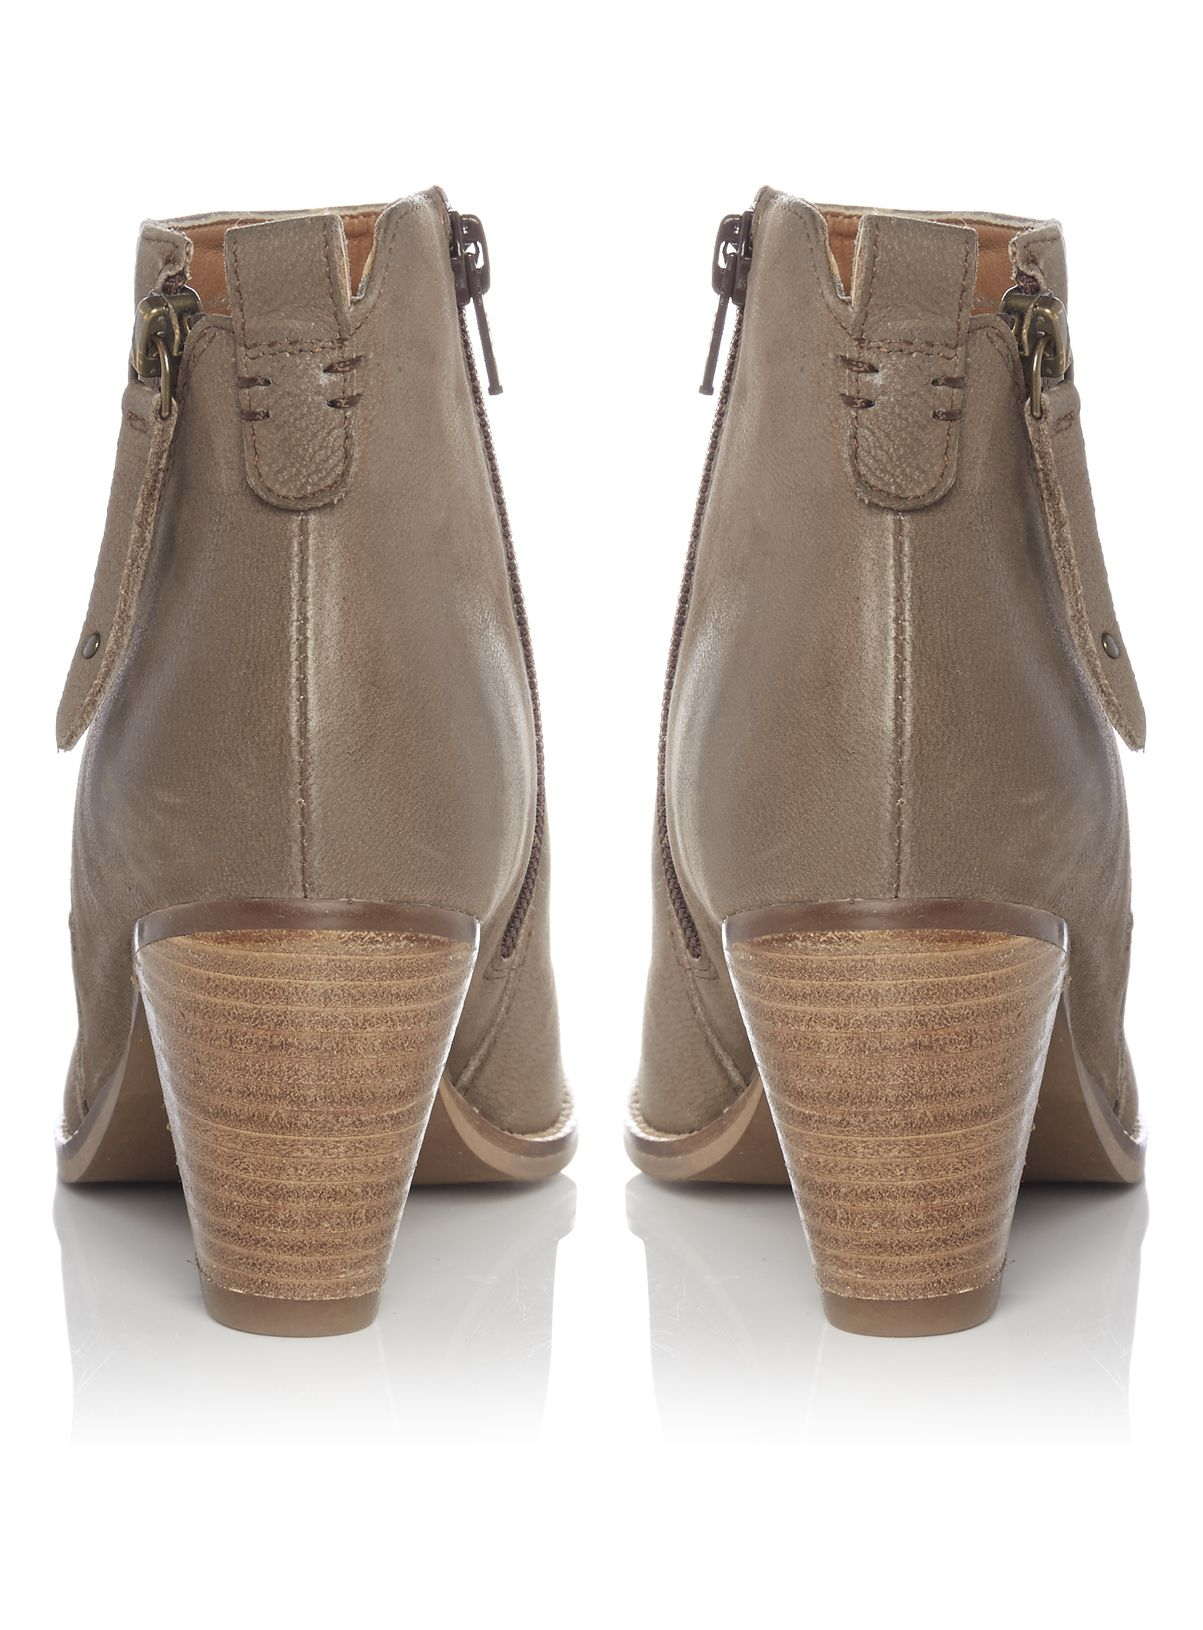 Meticulously crafted from leather, these ankle boots are versatile and timeless…